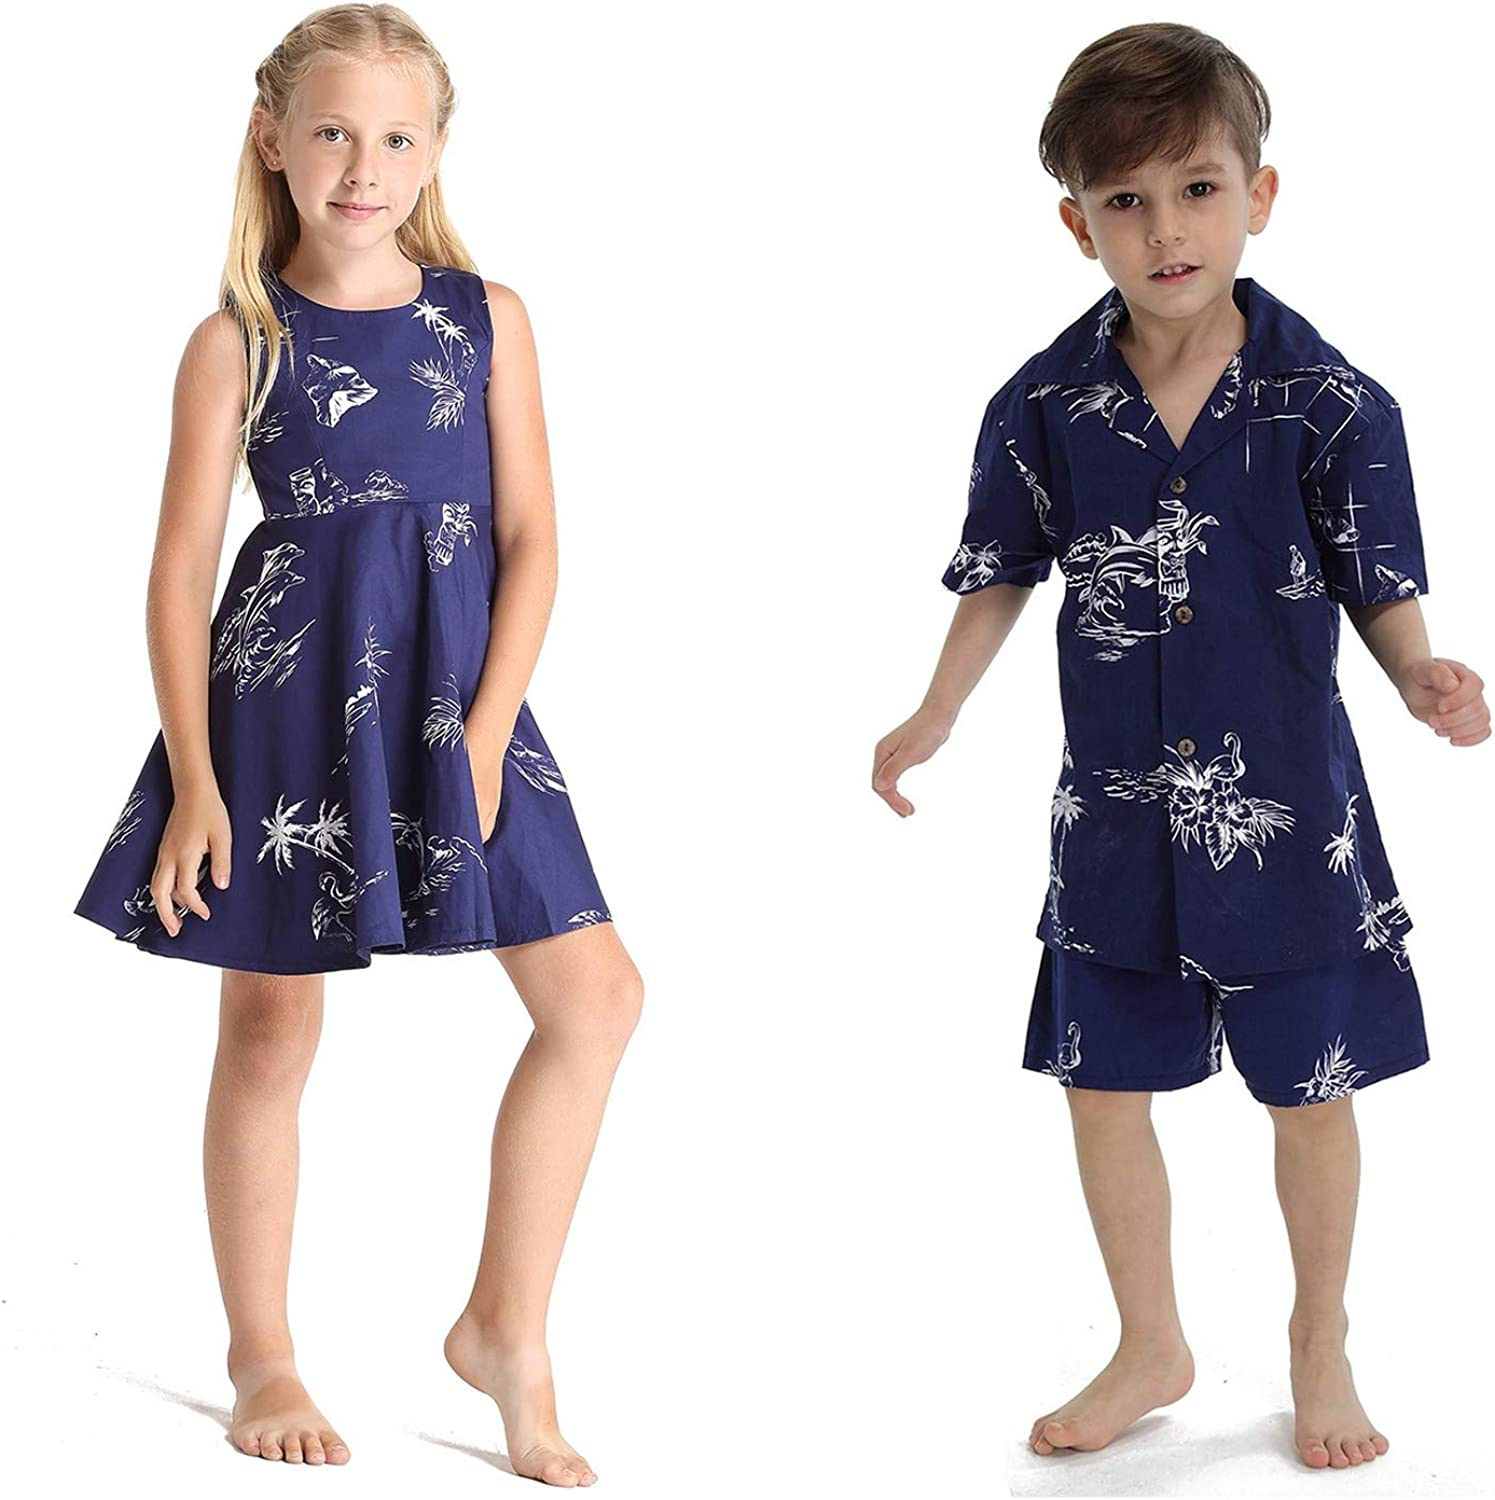 Matching Boy and Girl Siblings Classic Cheap mail Max 80% OFF order specialty store Luau Hawaiian Map Outfits